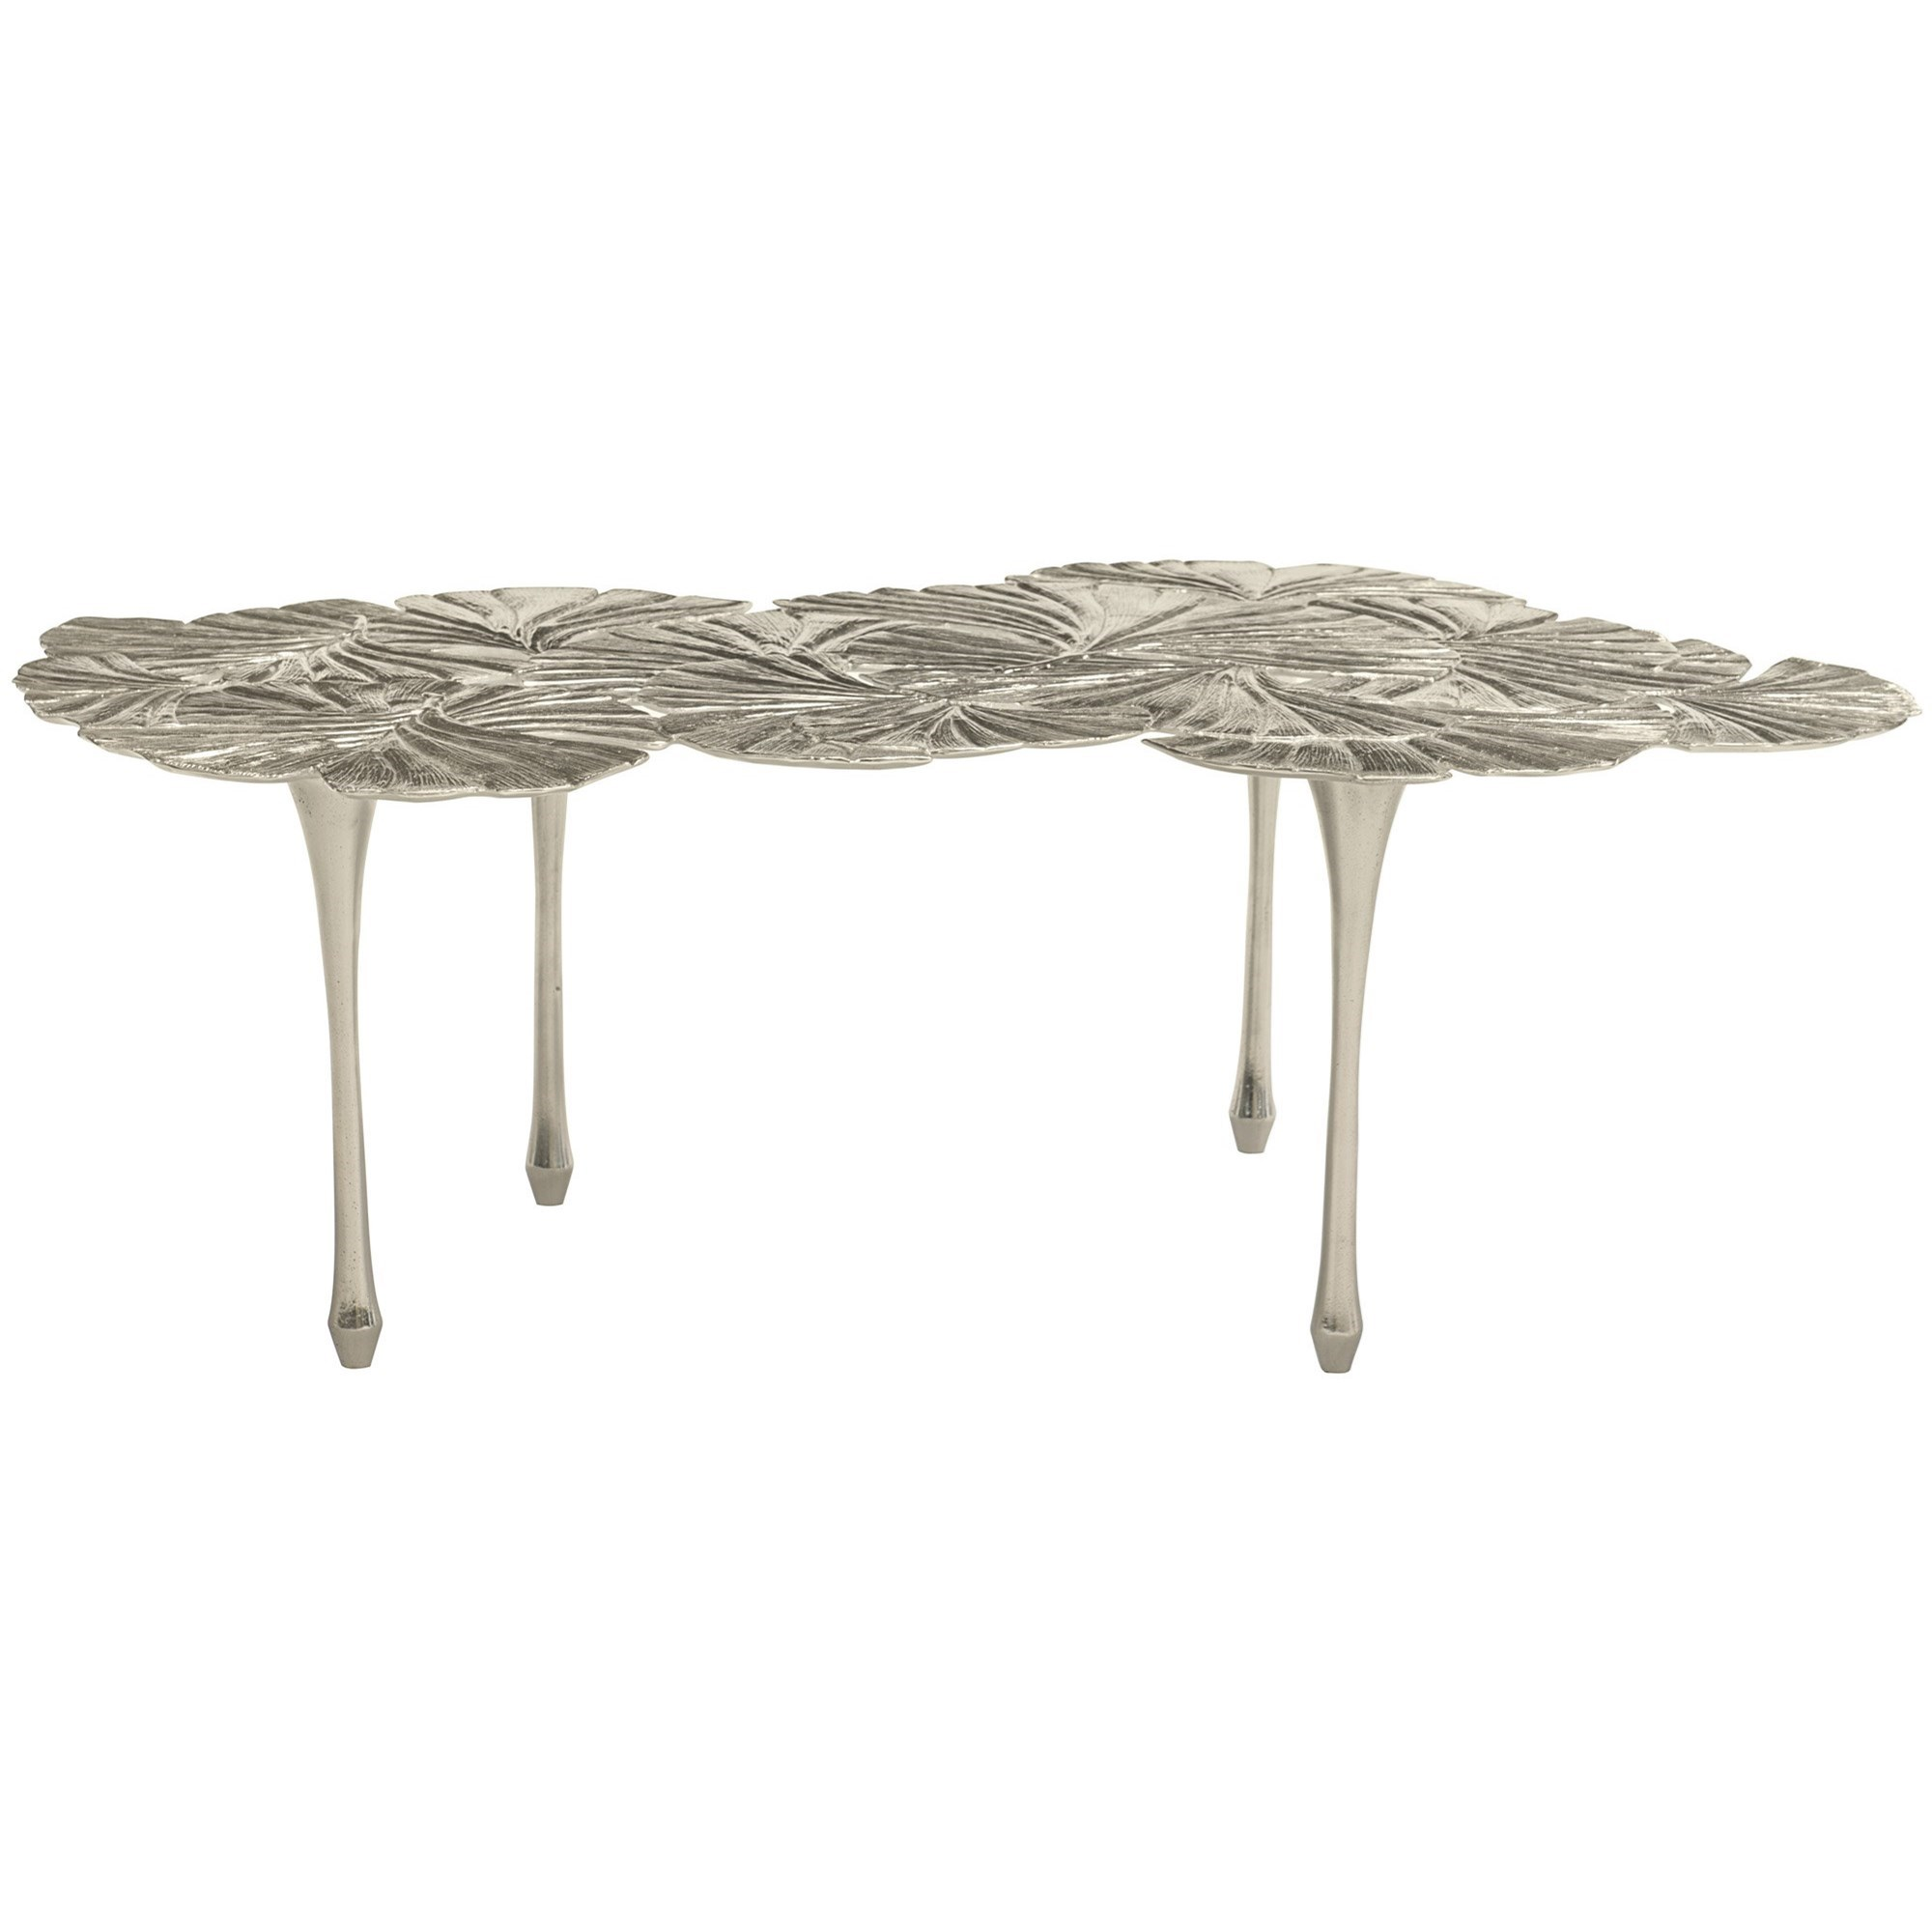 Interiors - Annabella Cocktail Table by Bernhardt at C. S. Wo & Sons Hawaii